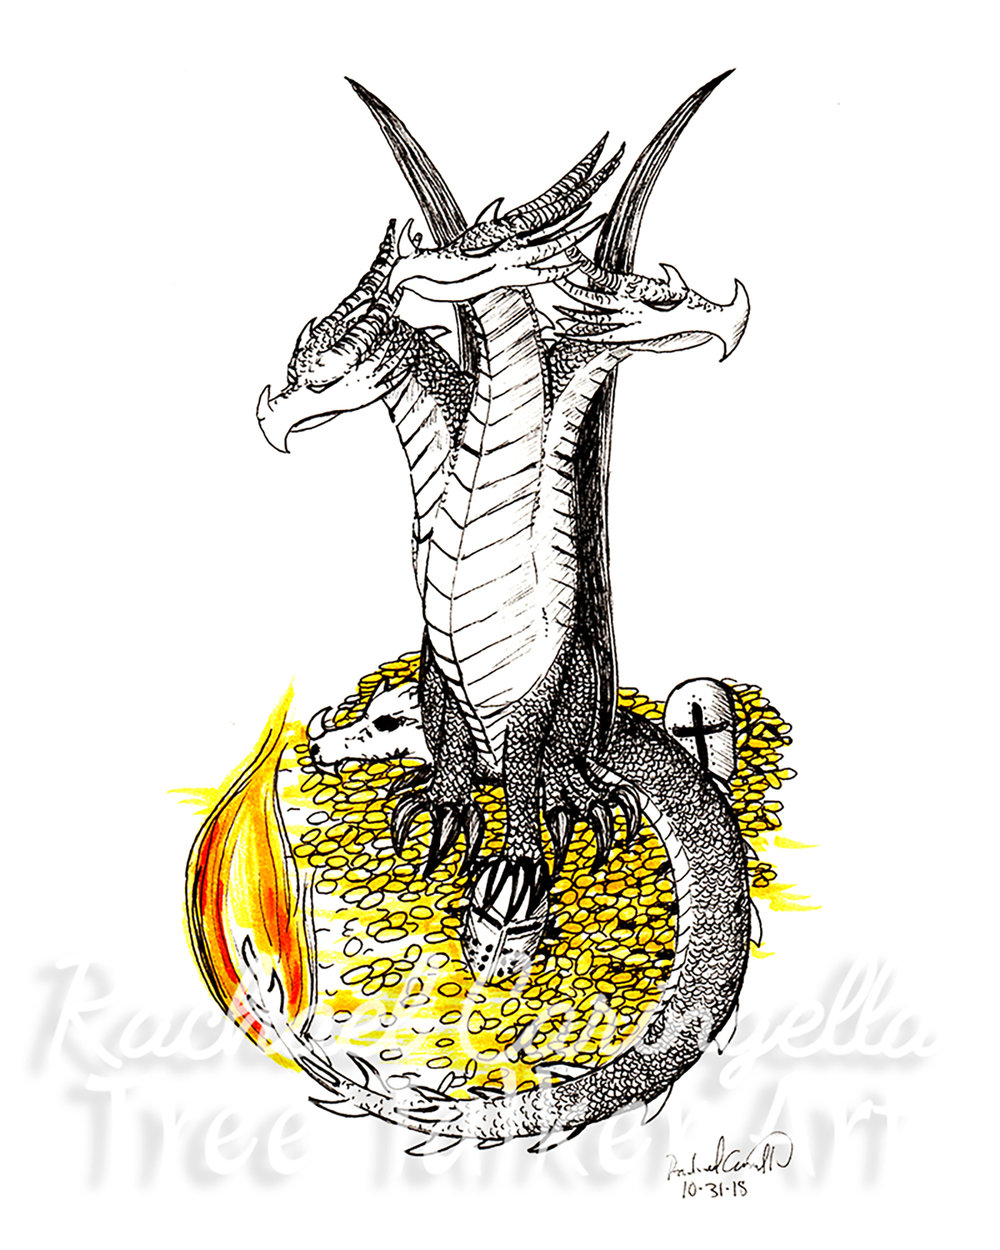 Three Headed Dragon Art Inktober 2018 Illustration of a  Three Headed Dragon